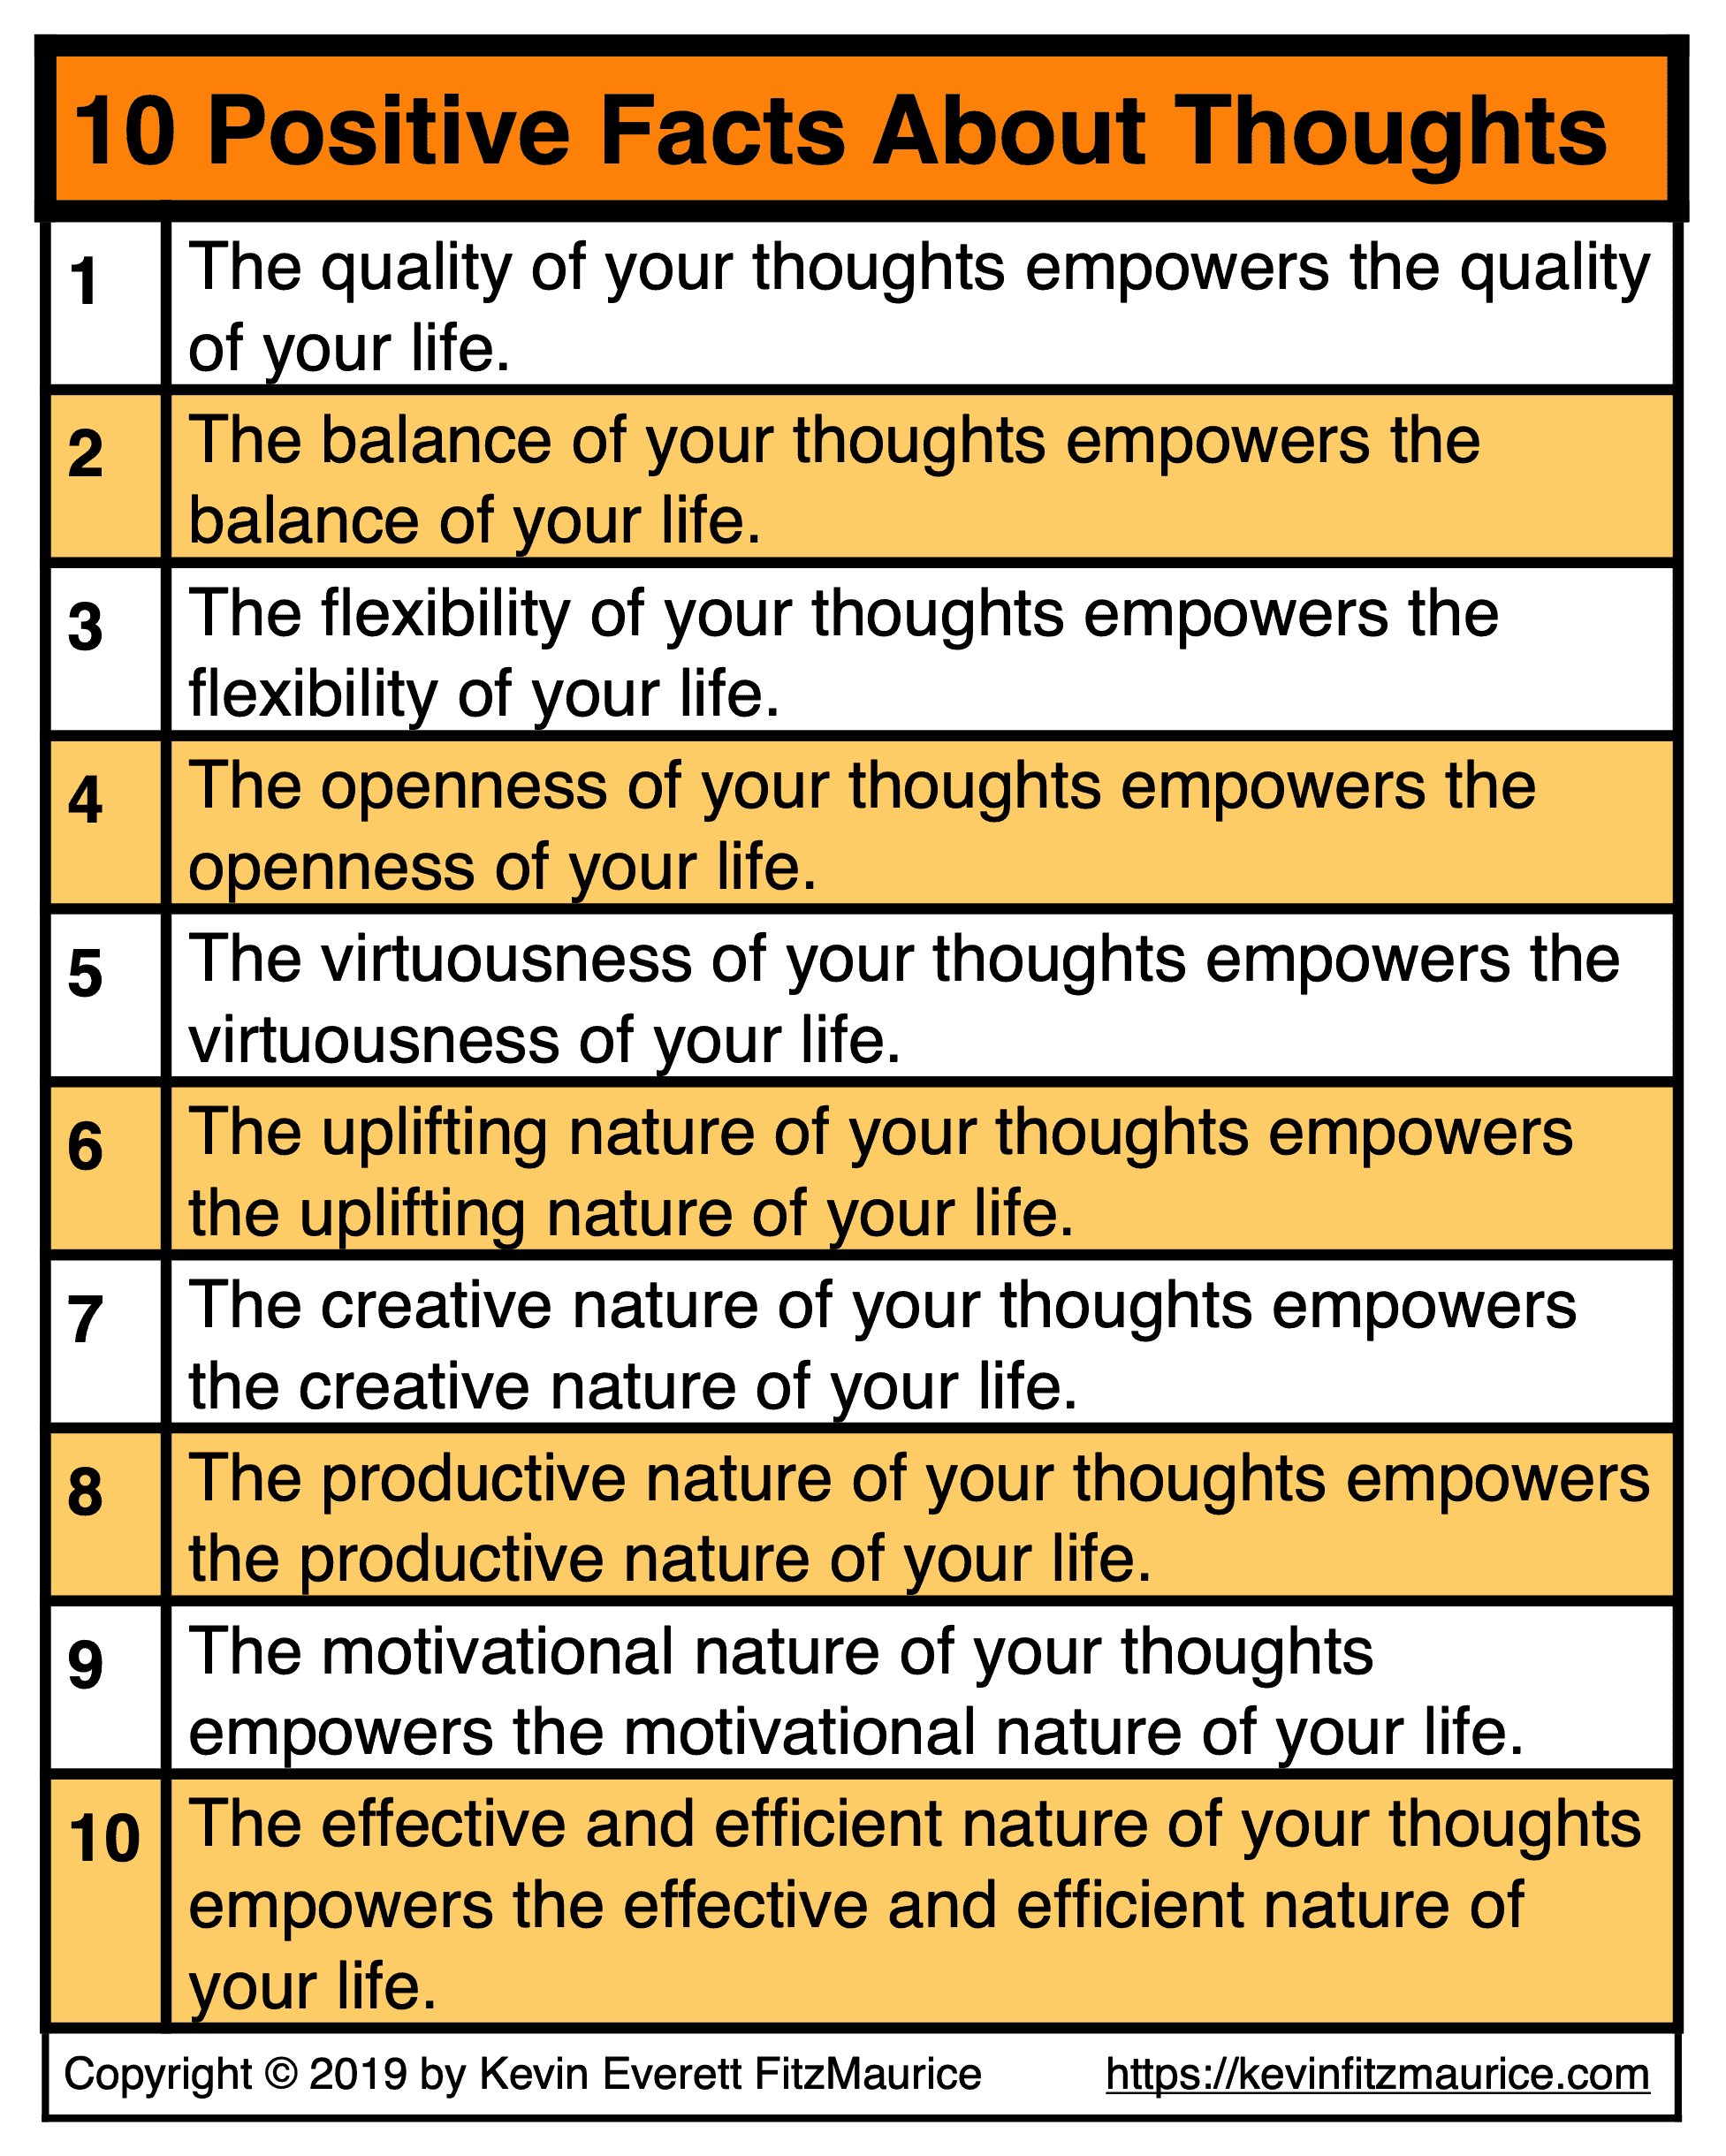 10 Positive Facts About Thoughts